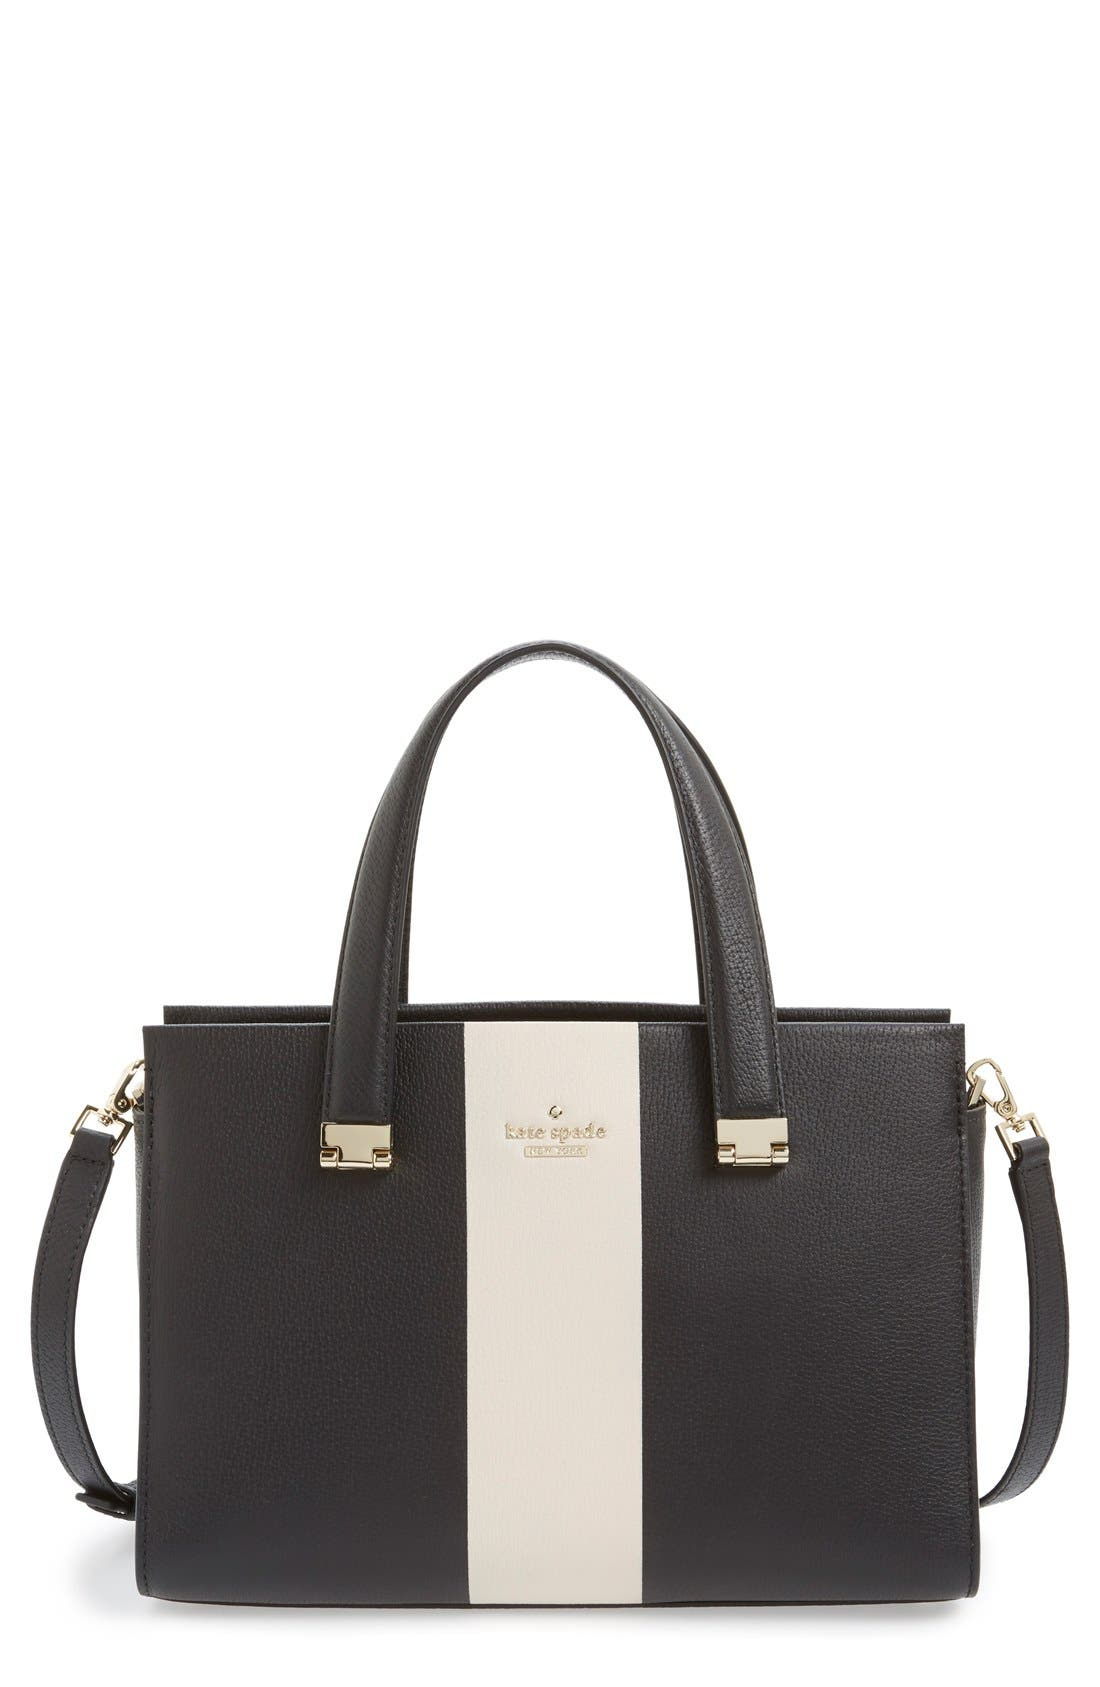 Main Image - kate spade new york 'concord street - gail' leather satchel